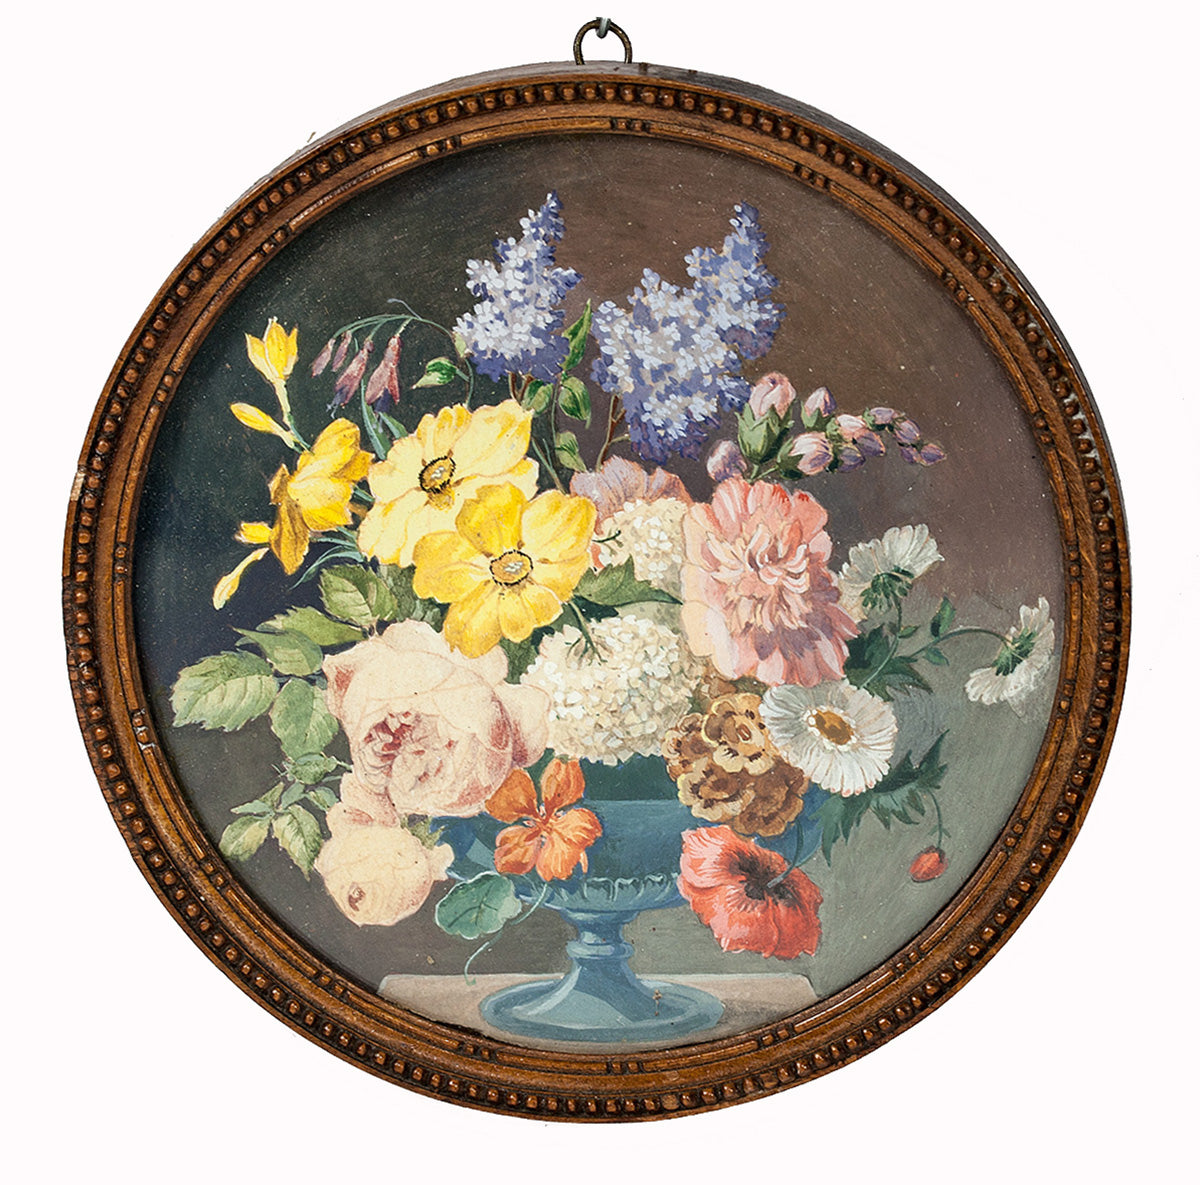 "Antique French Watercolor Painting, Bouquet in Vase Still Life, in Frame, Miniature 5 3/8"" Diam"